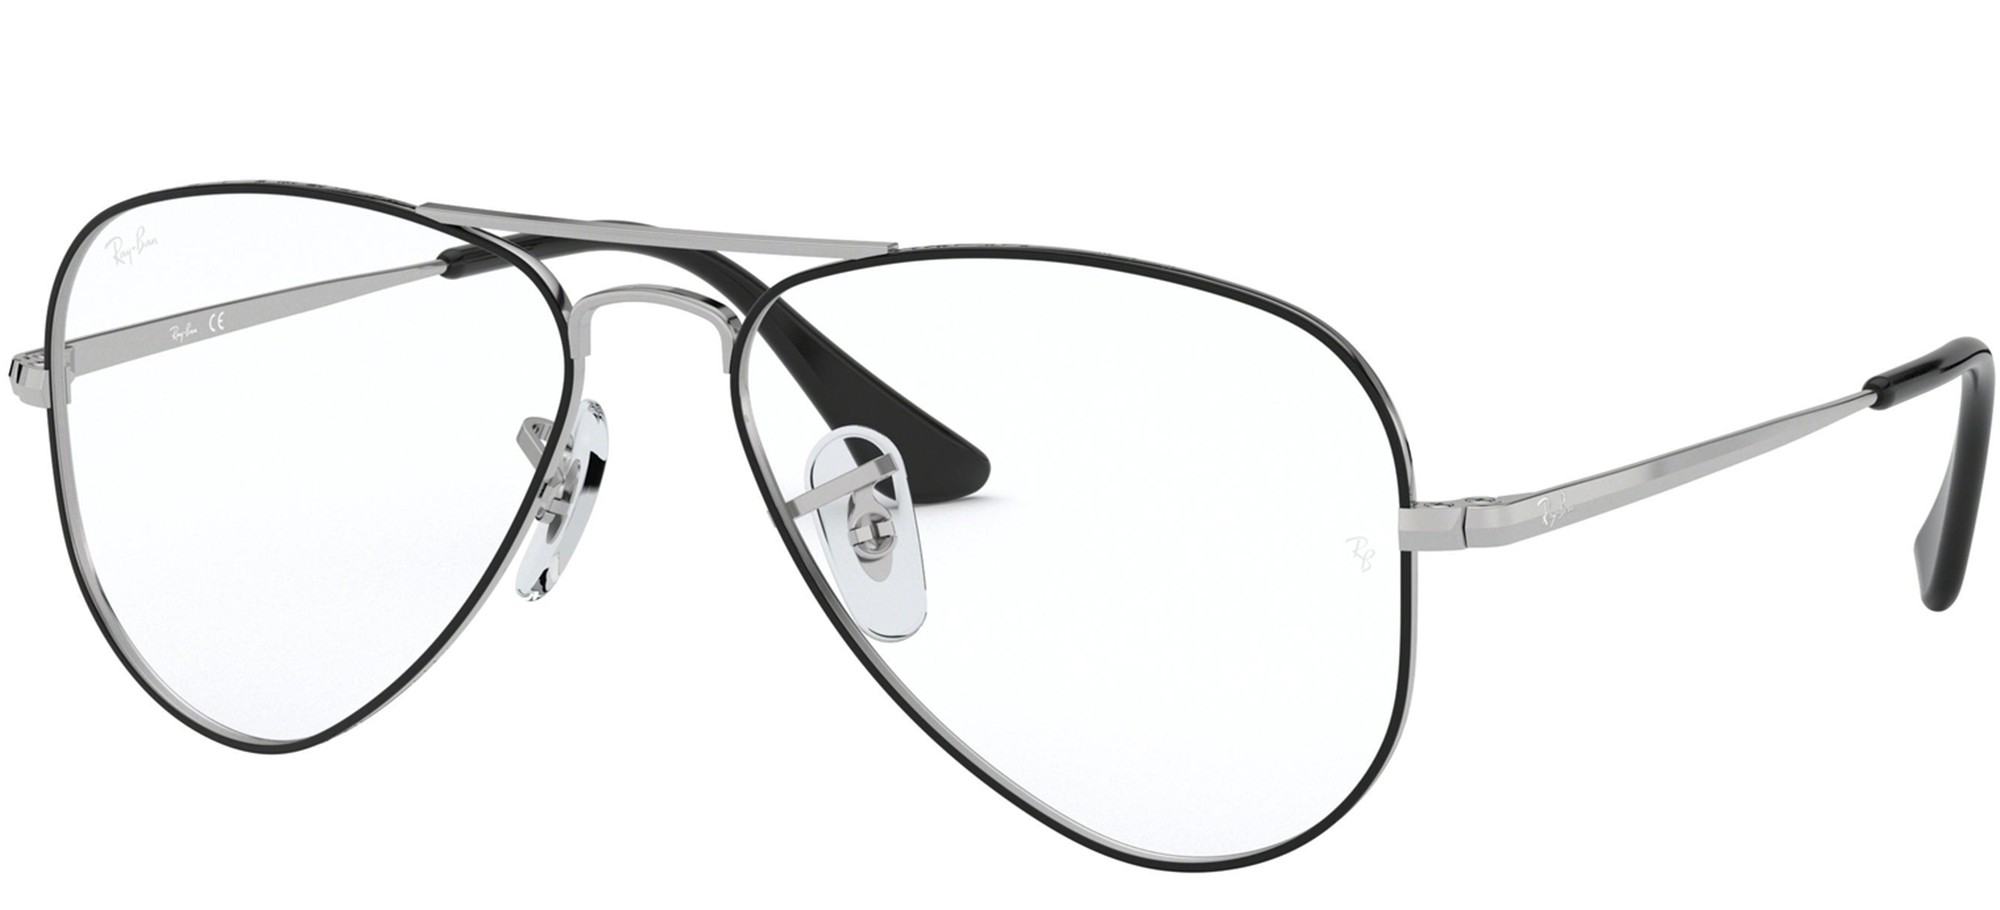 Ray-Ban Junior eyeglasses RY 1089